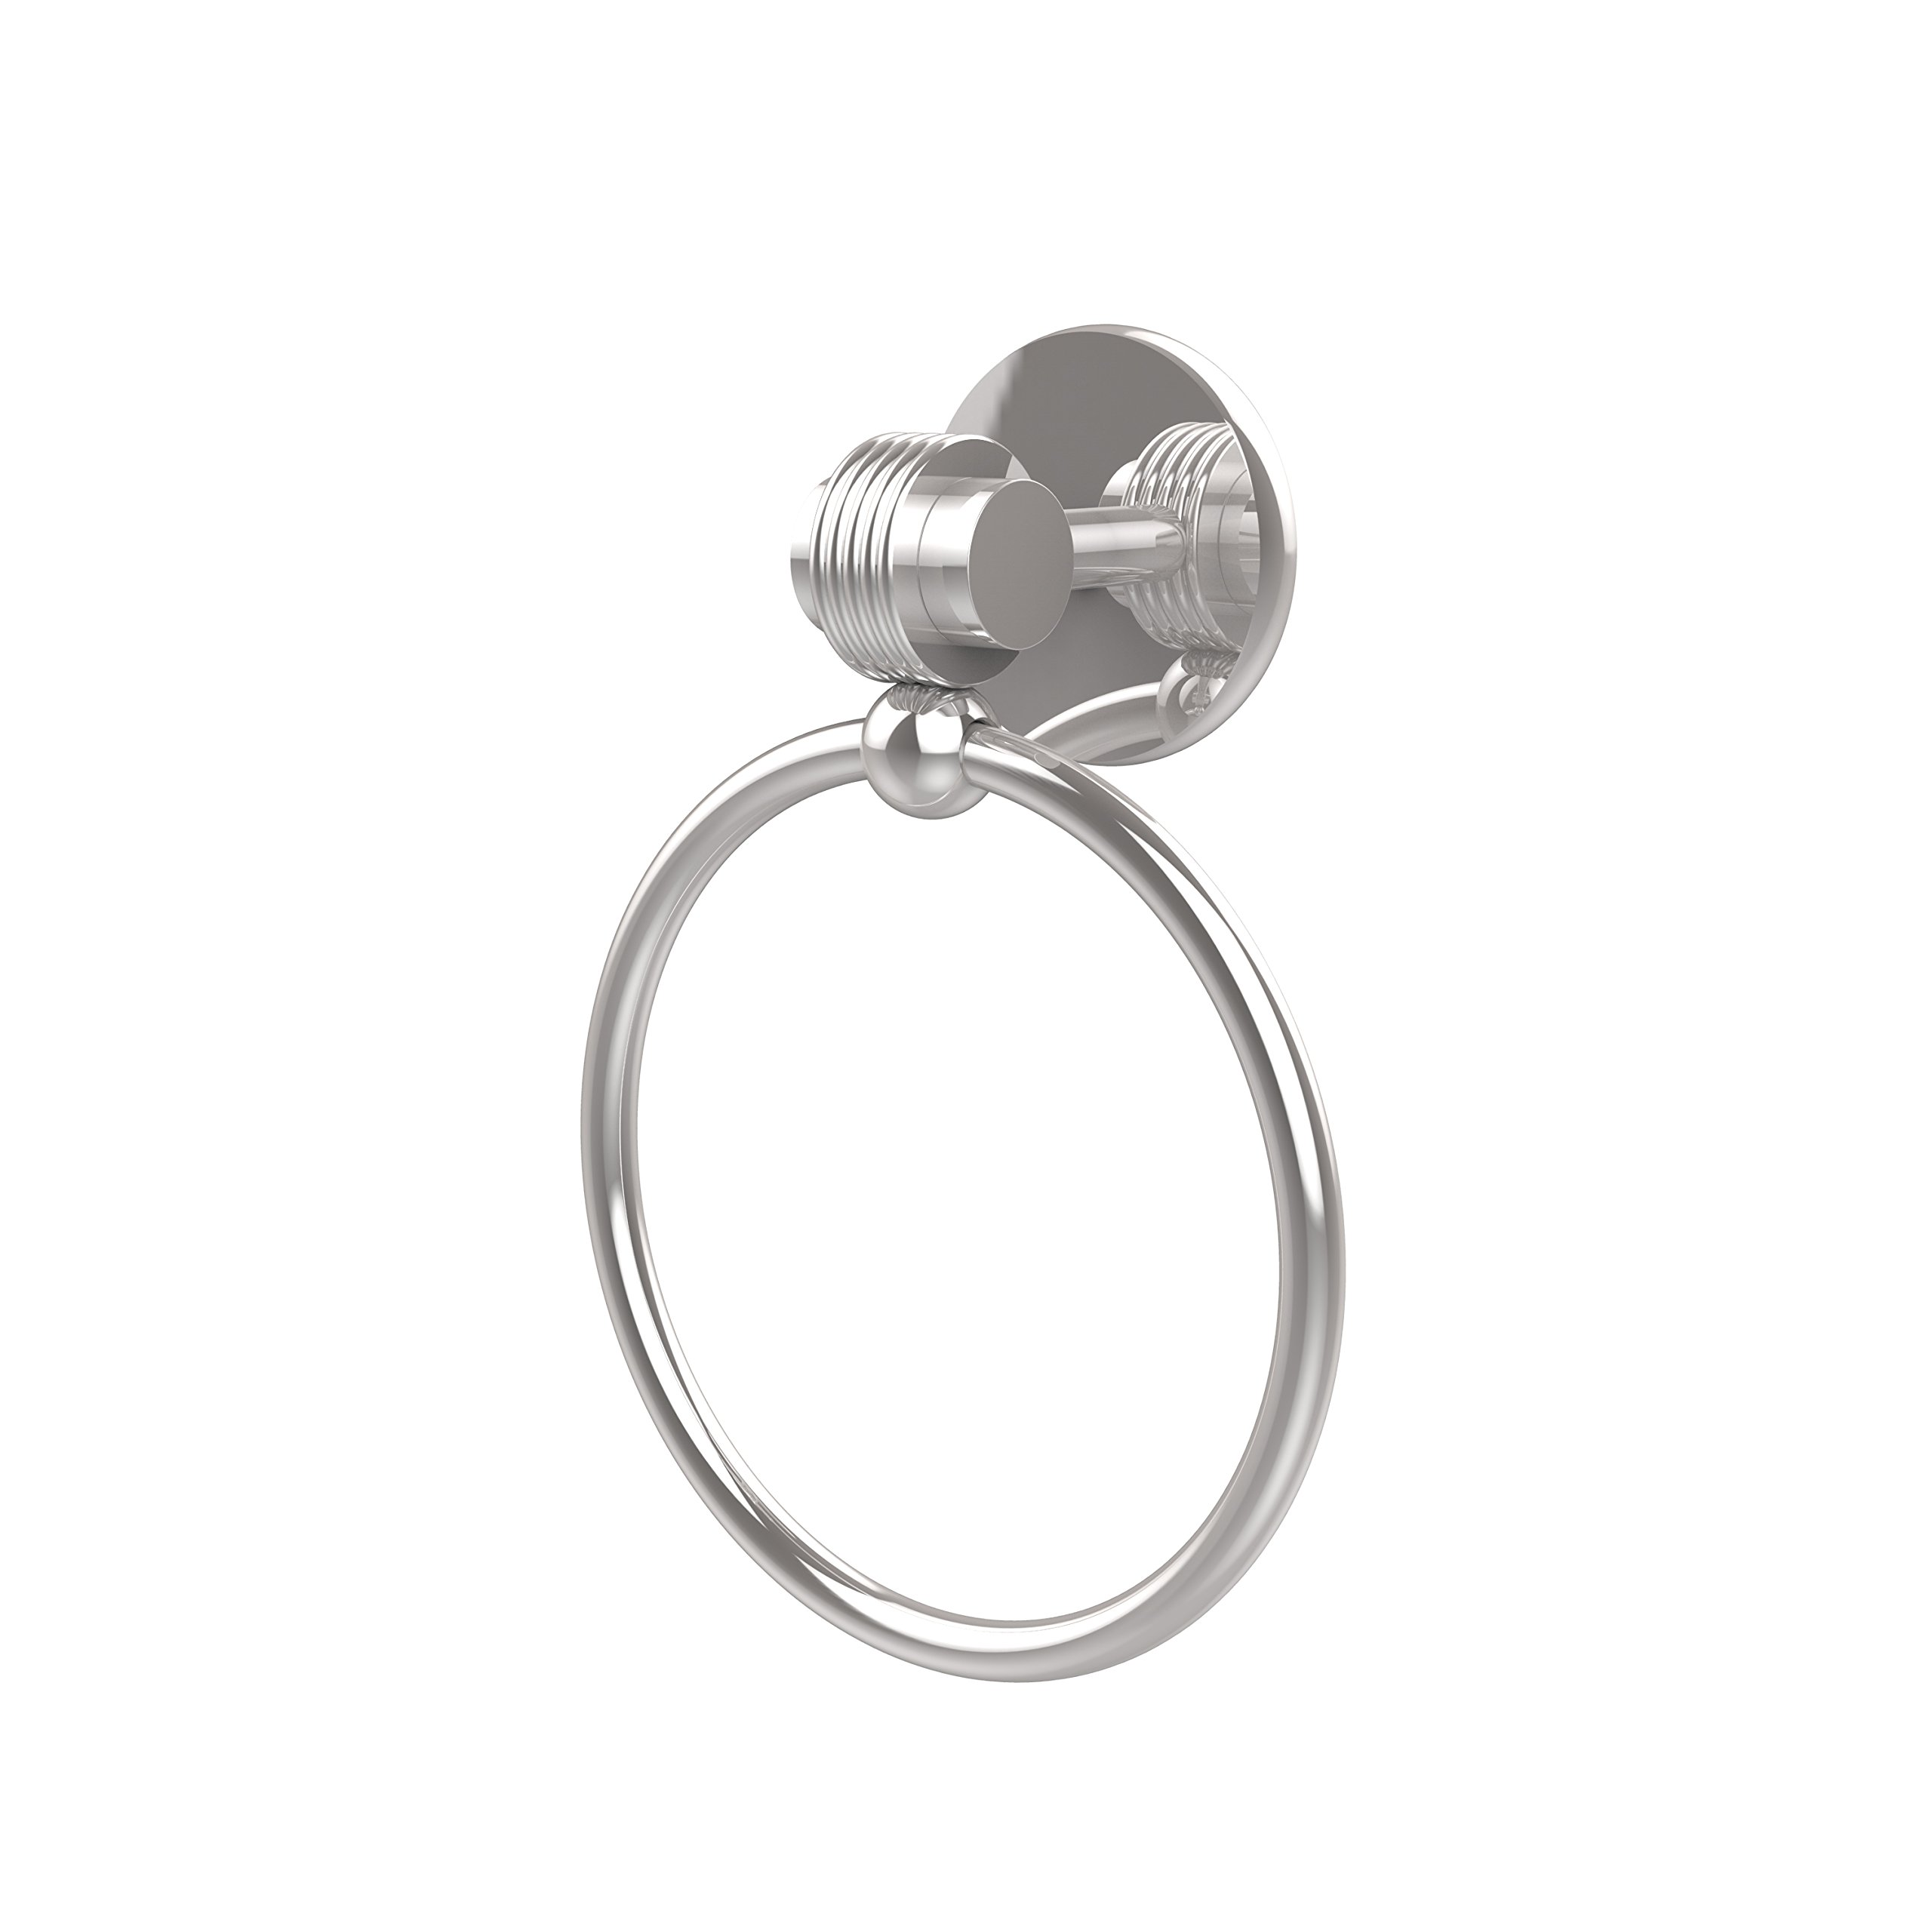 Allied Brass 7216G-PC Single Towel Ring, Polished Chrome